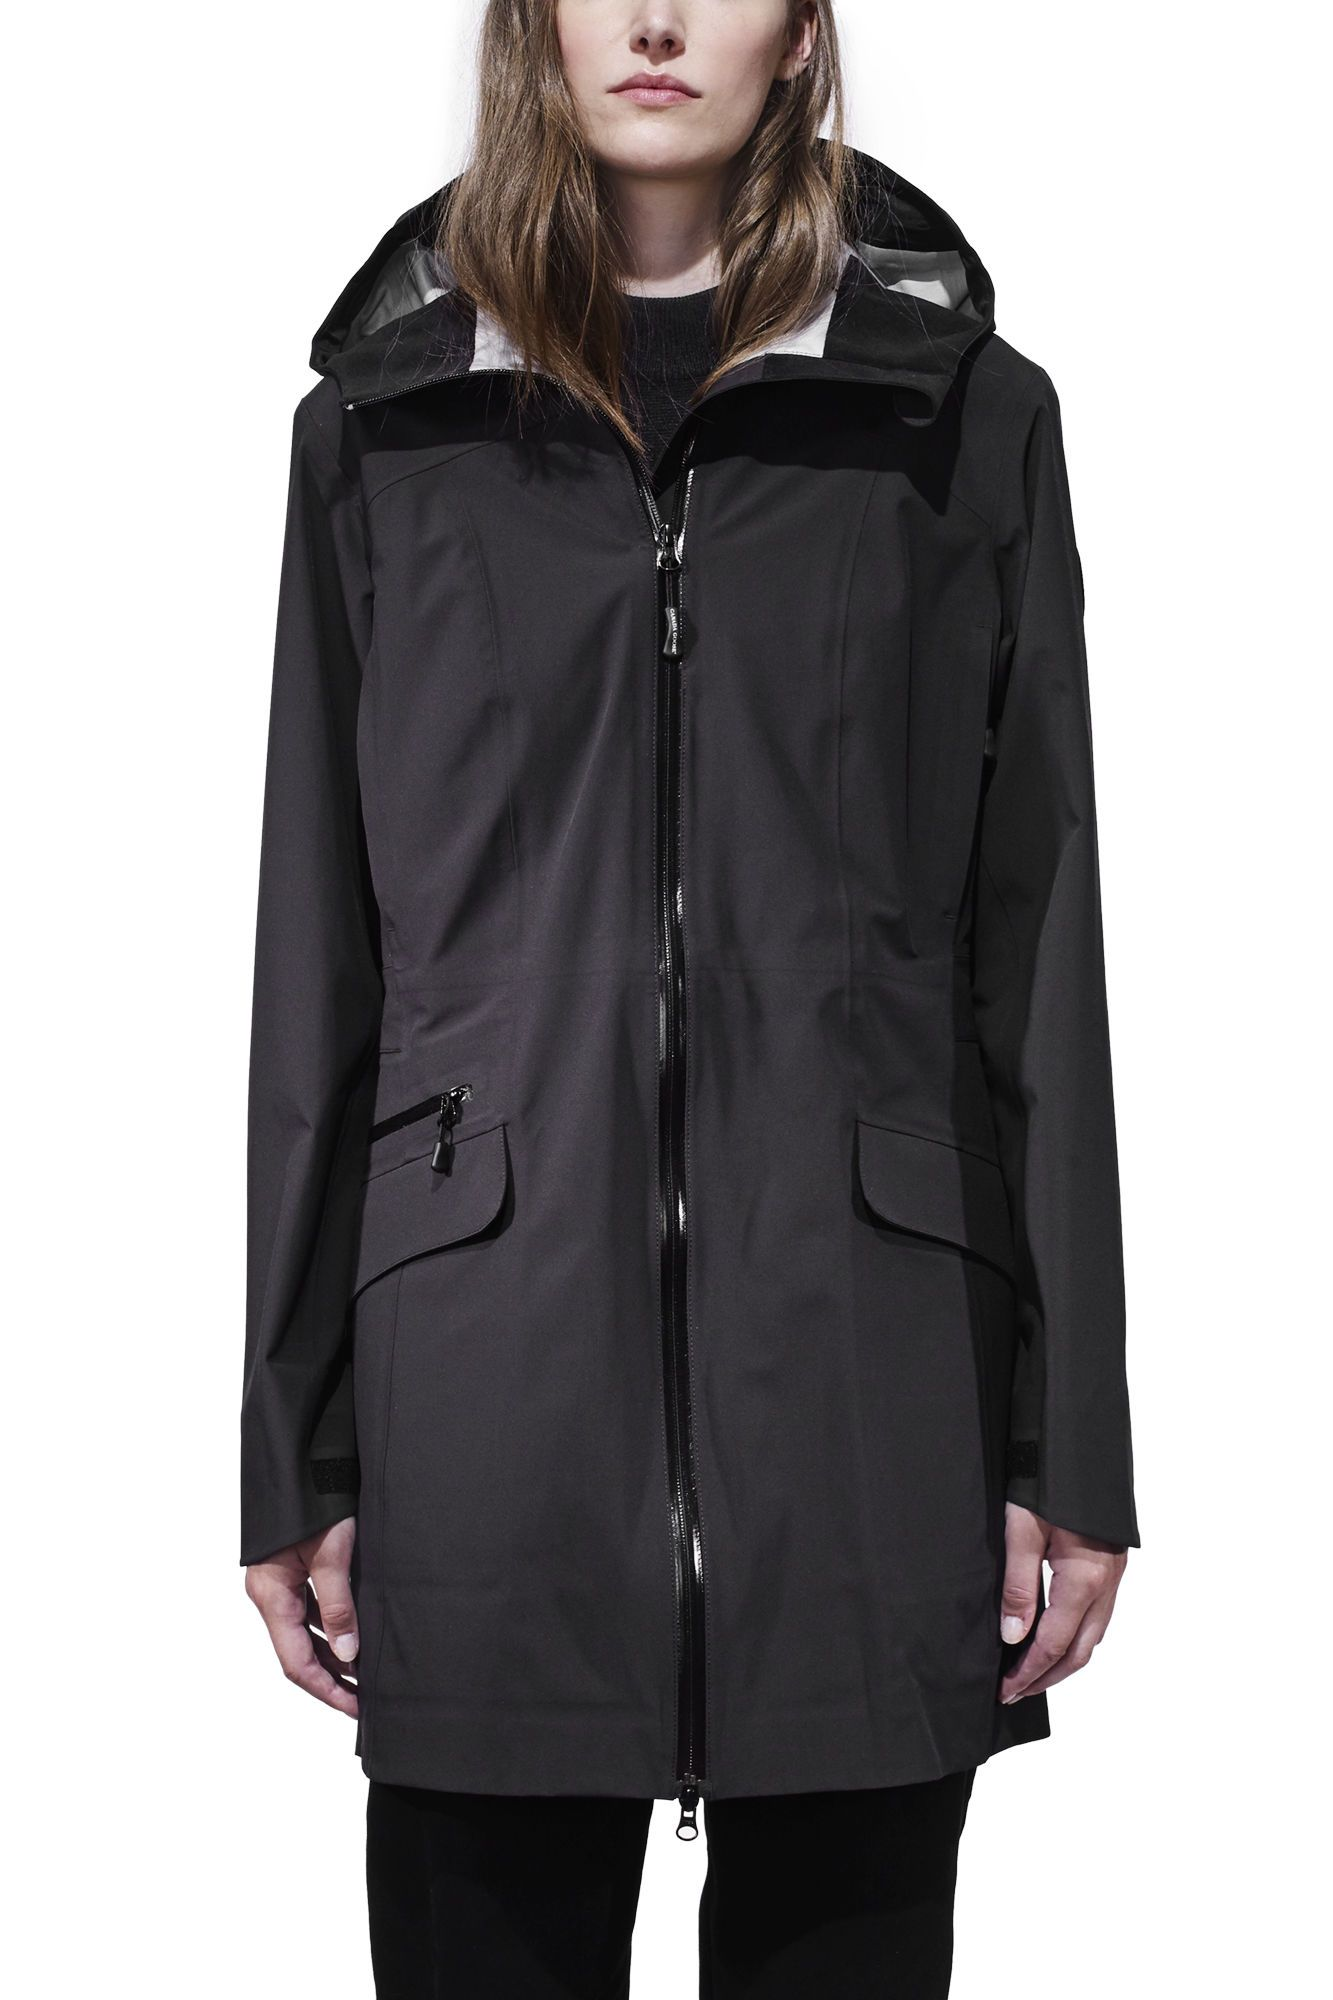 canada goose jackets are they waterproof